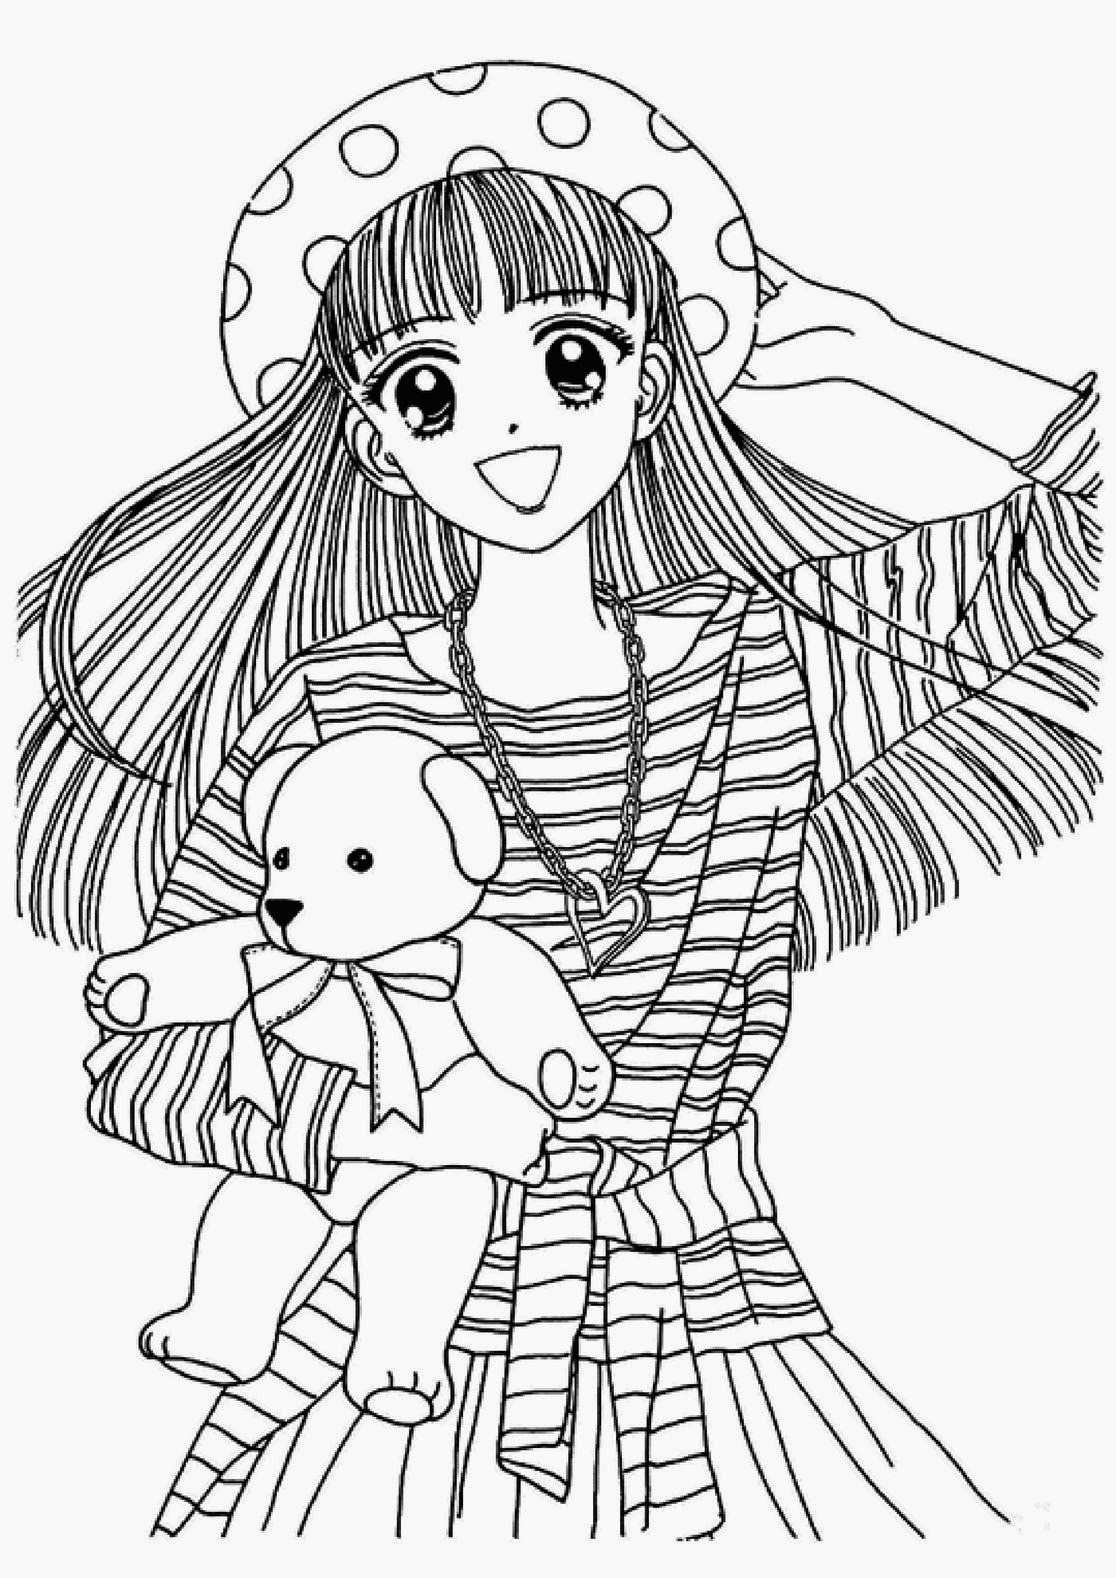 anime coloring pages to print anime coloring pages best coloring pages for kids pages to print anime coloring